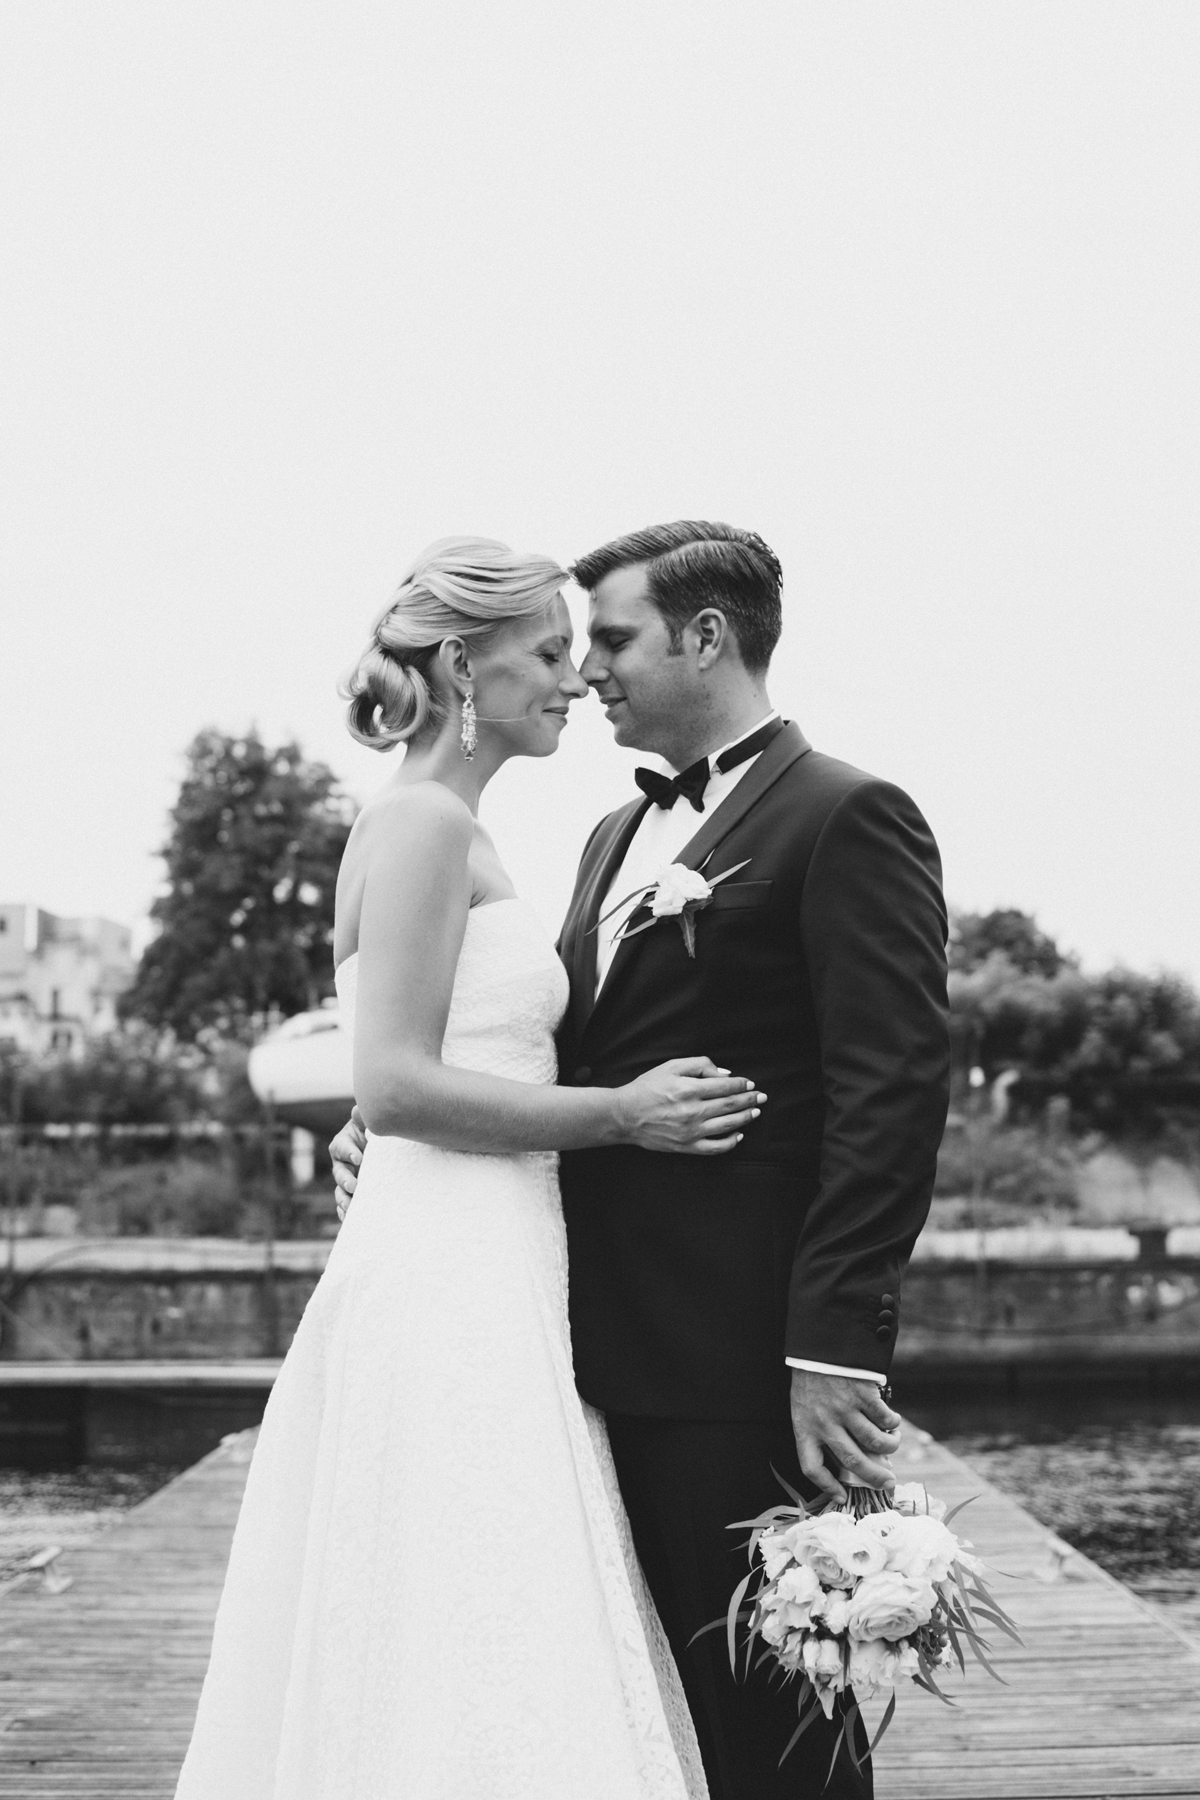 527-Petersone-Liene-wedding-blog